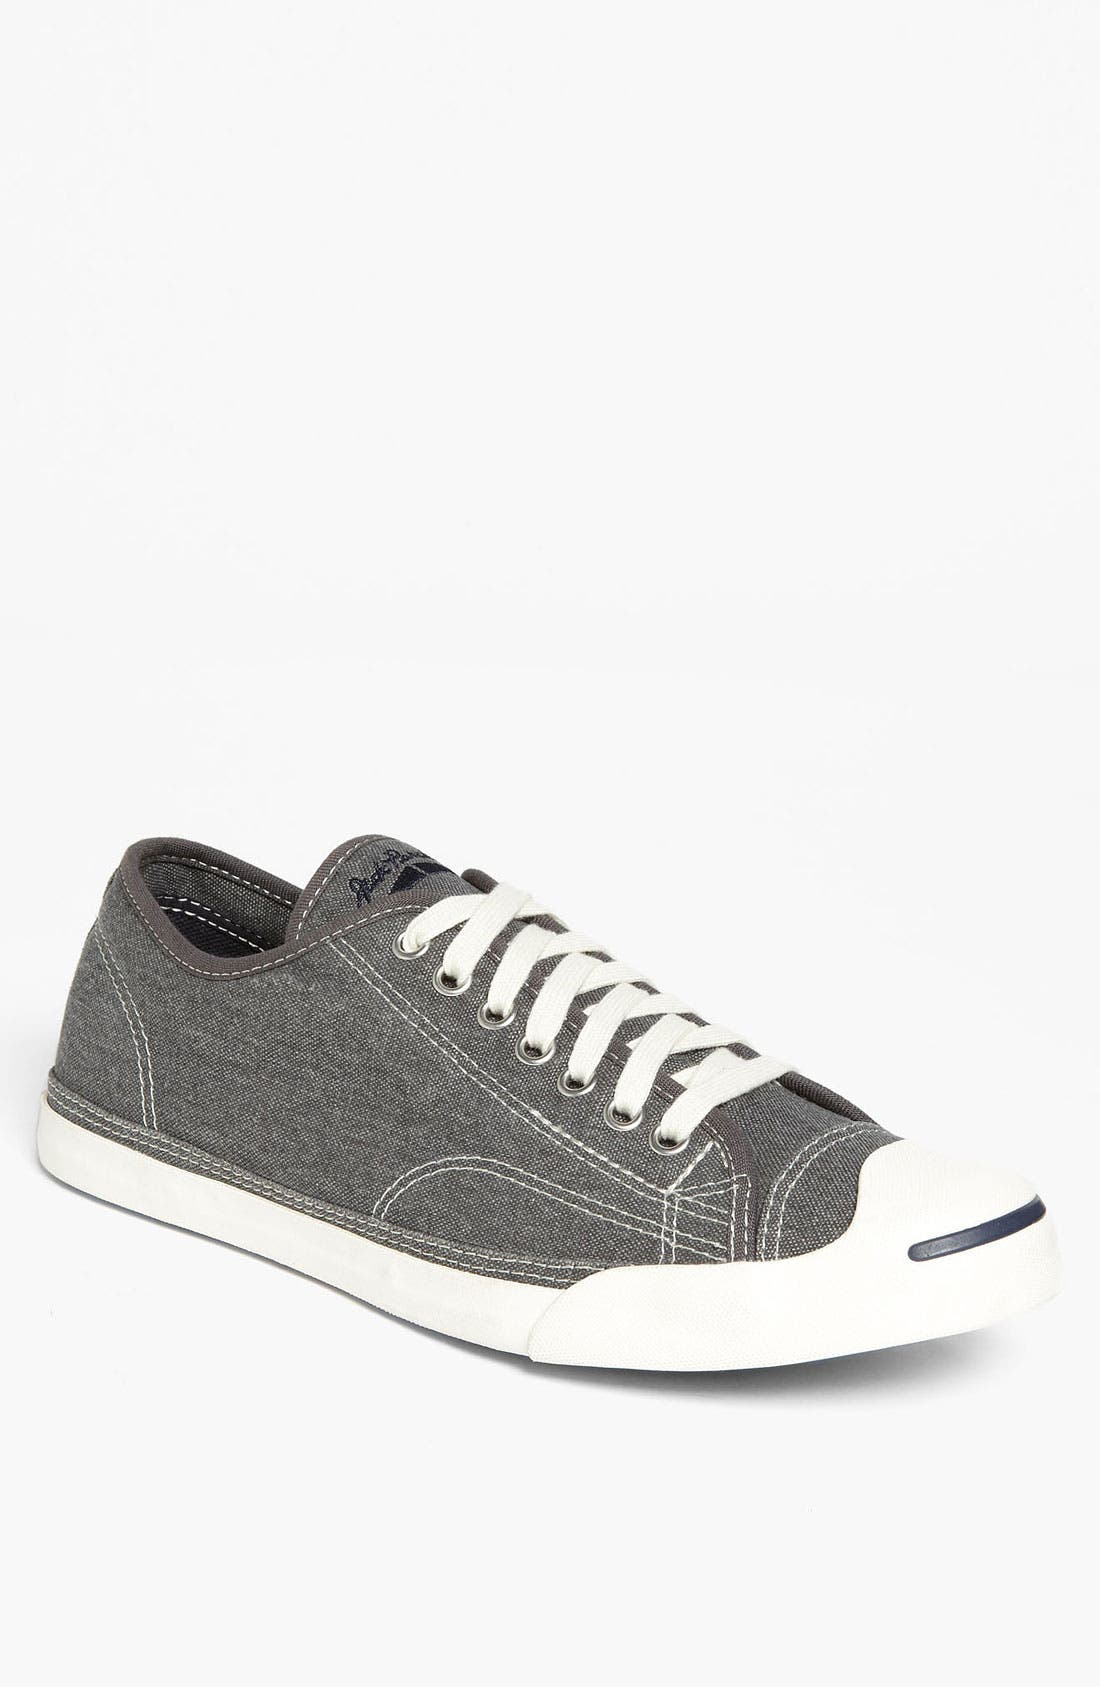 'Jack Purcell LP' Sneaker,                             Main thumbnail 2, color,